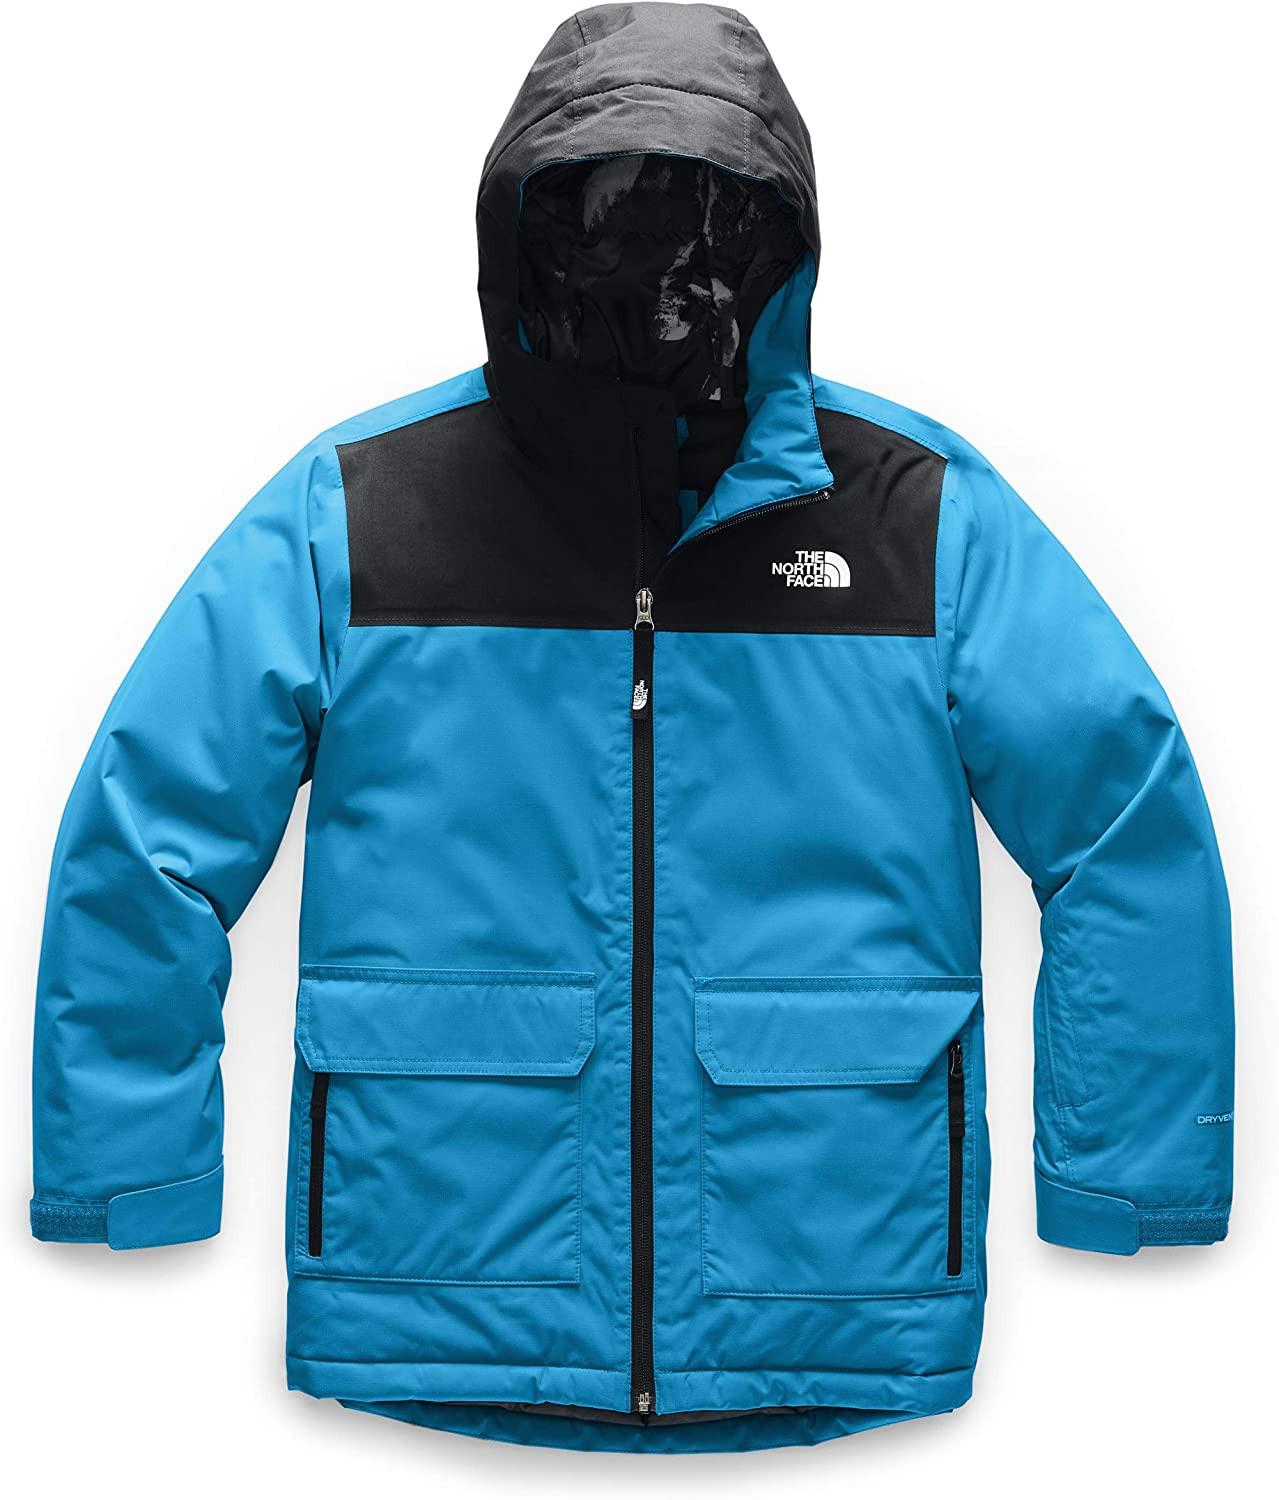 die North Face Boy'S Freedom Insulated Jacket